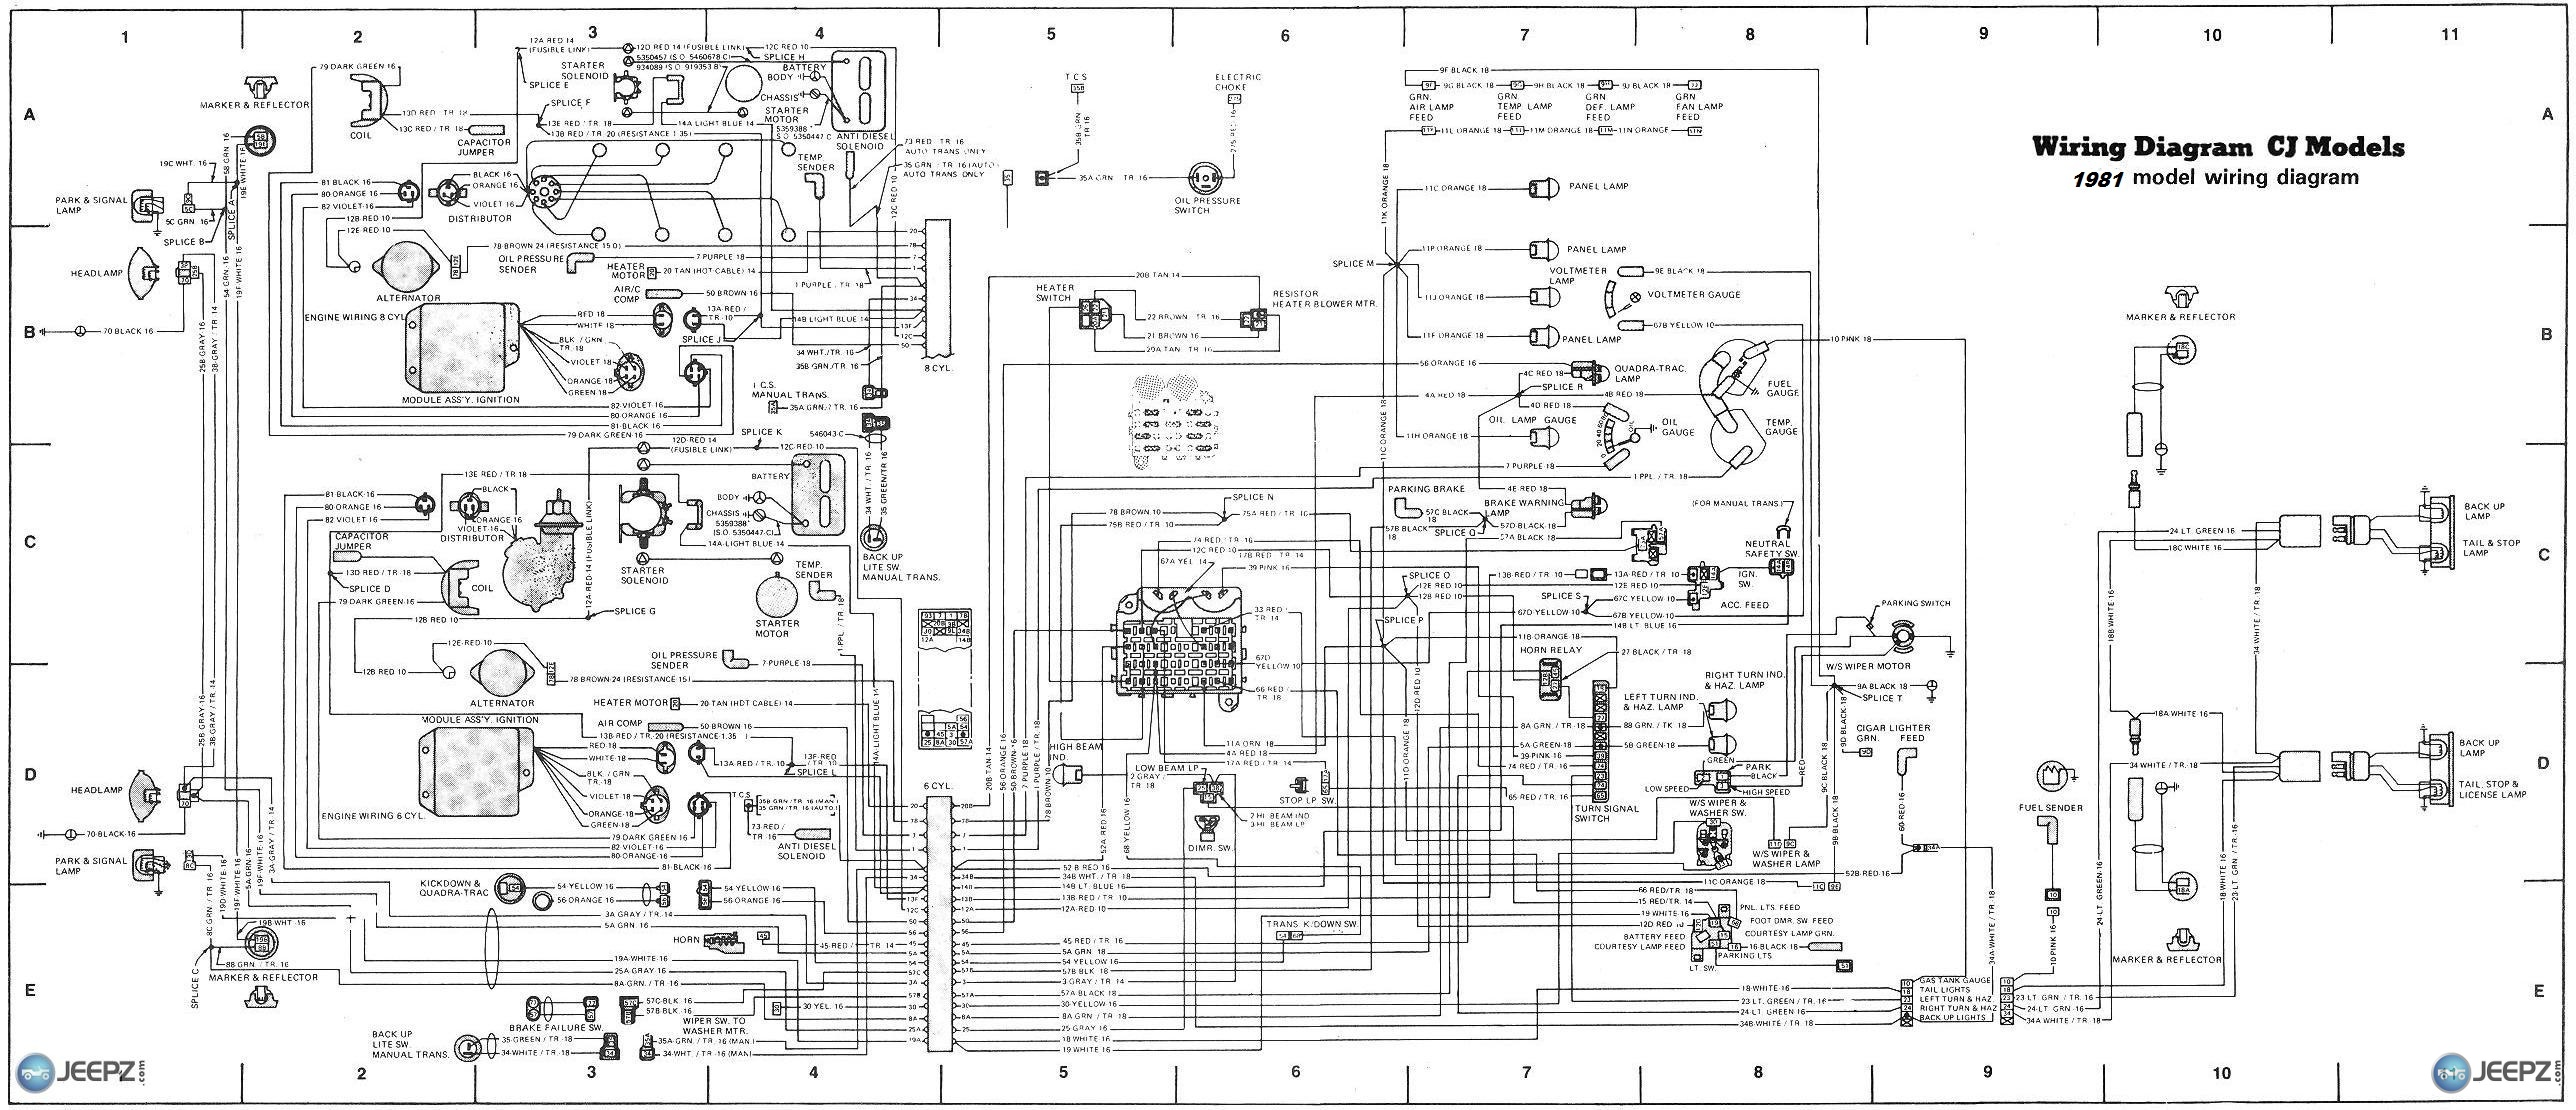 wiring harness for jeep cj5 wiring library. Black Bedroom Furniture Sets. Home Design Ideas